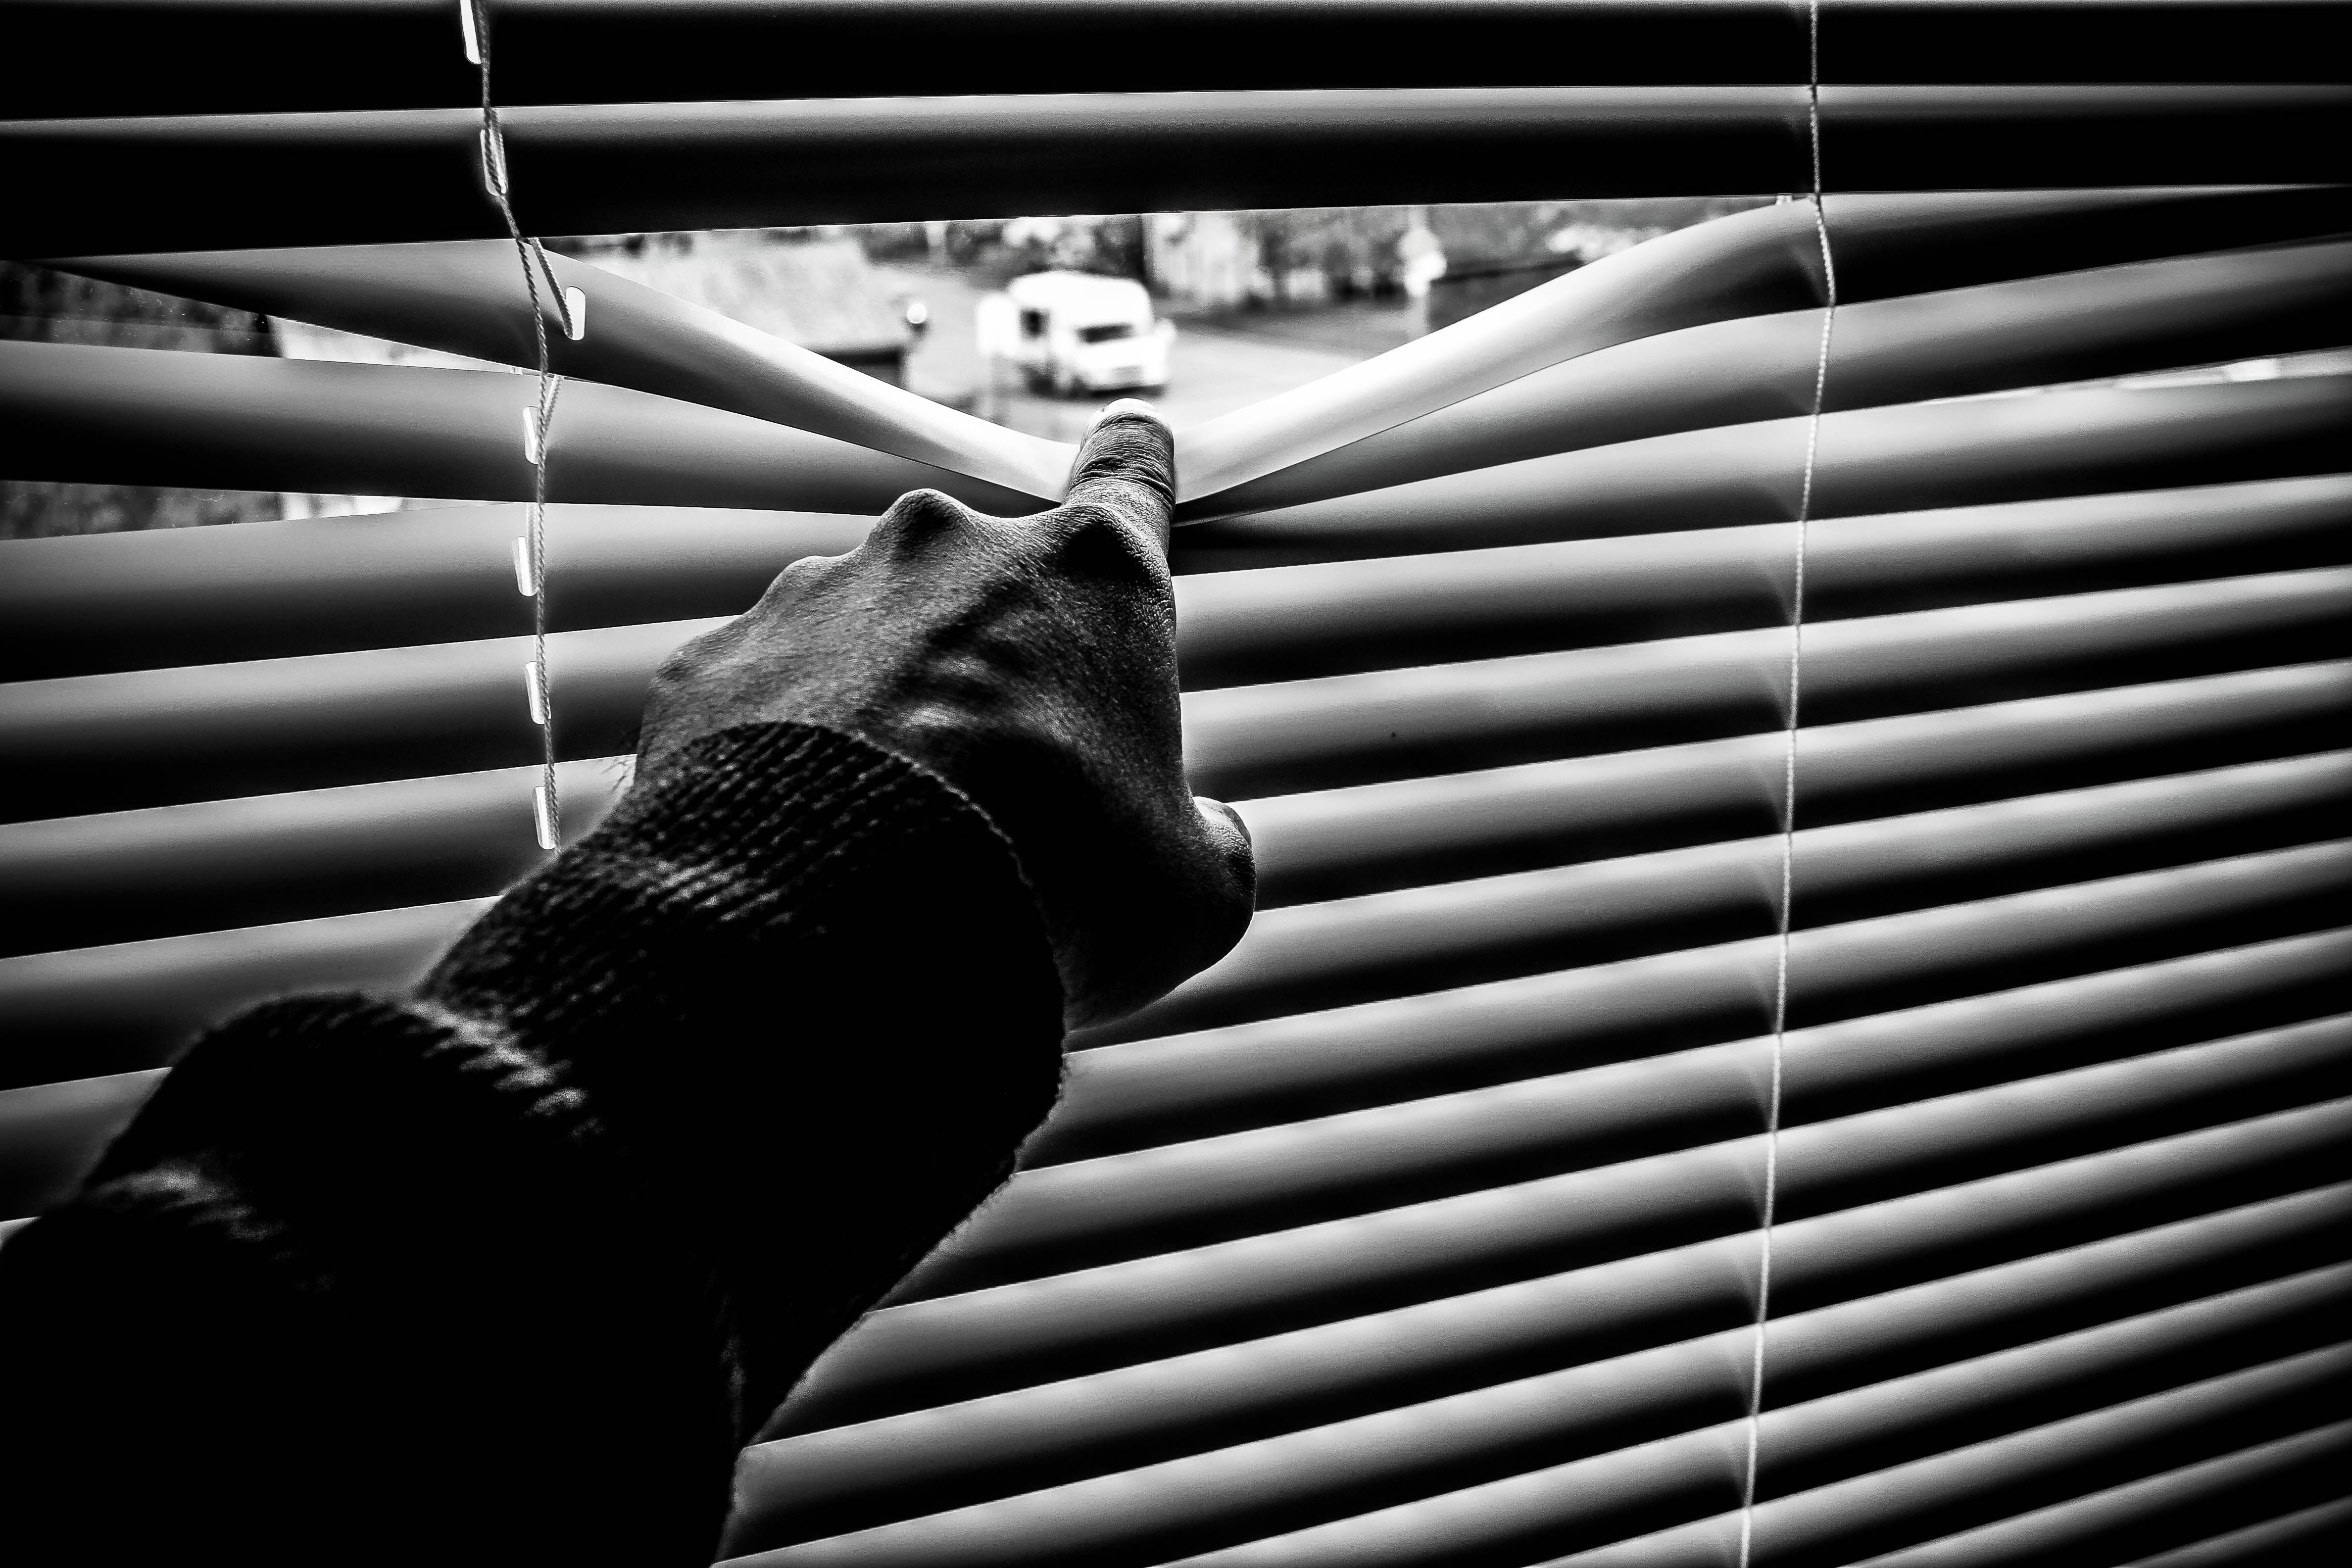 Black and white blinds. Photo by Hammad Bhatti from Pexels.